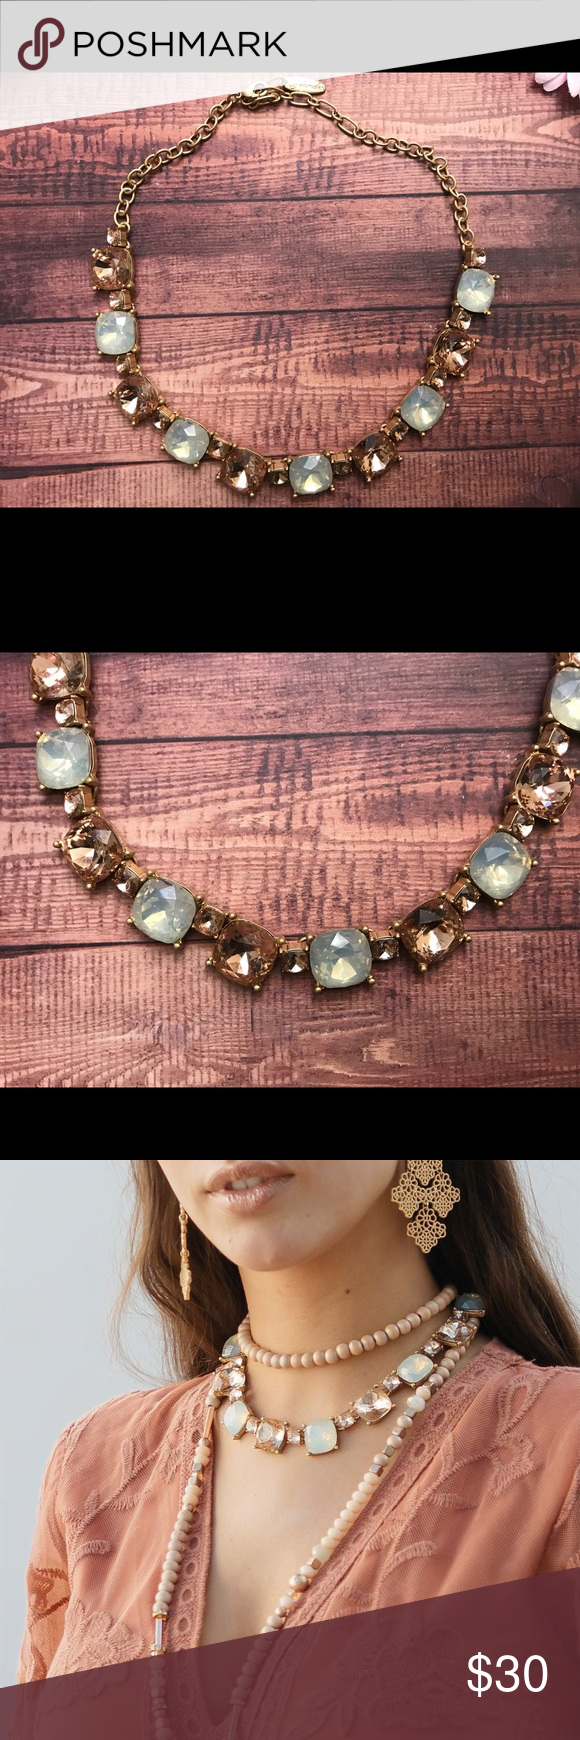 Champagne And Sea Foam Green Necklace My Posh Picks Pinterest Body Gold Setting 155 215 Adjustable Plunder Jewelry Necklaces